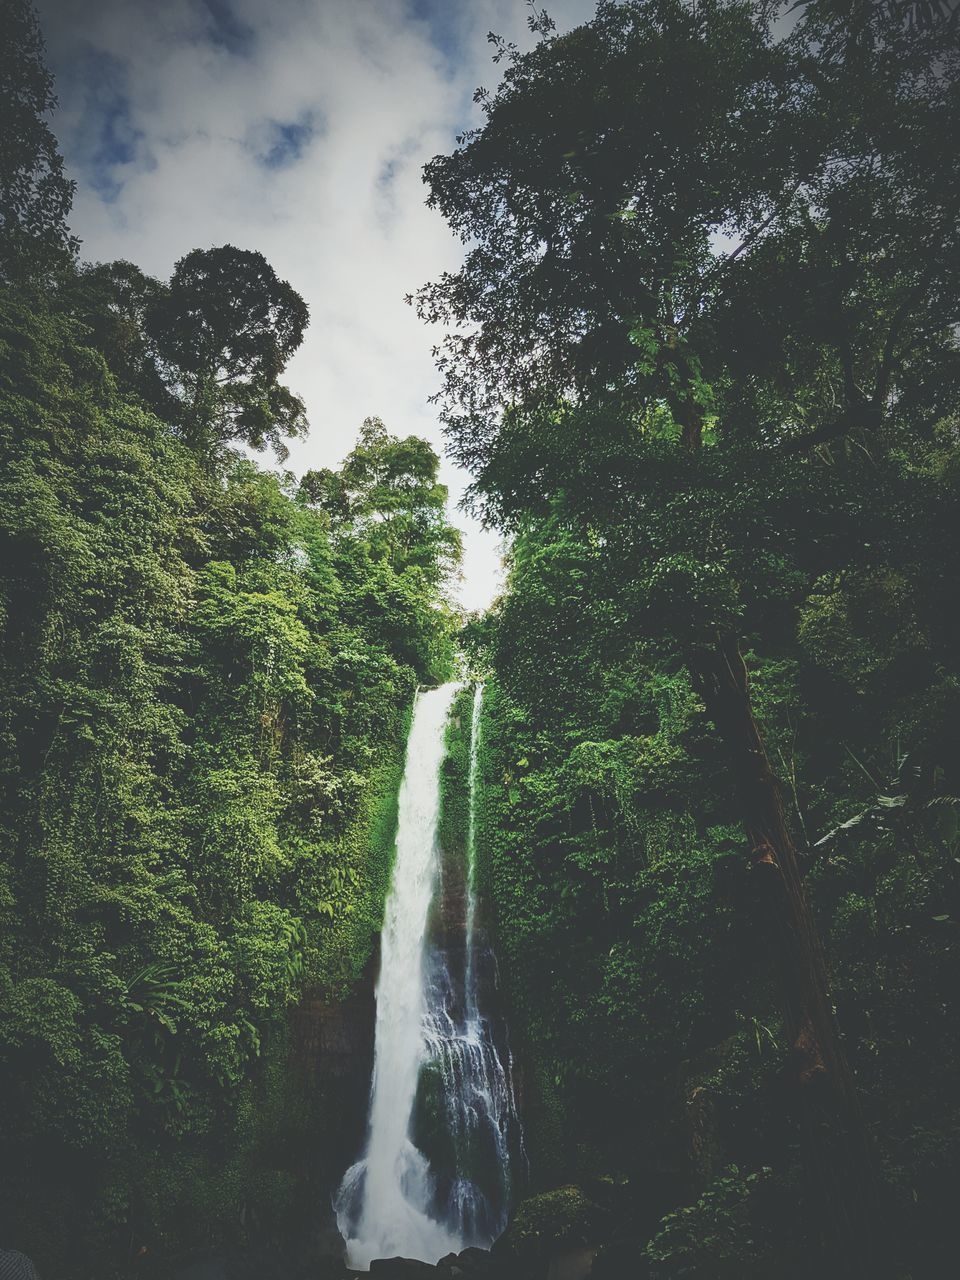 tree, waterfall, motion, nature, beauty in nature, water, scenics, green color, growth, low angle view, long exposure, no people, forest, outdoors, day, lush foliage, tranquil scene, tranquility, travel destinations, sky, plant, vacations, spraying, freshness